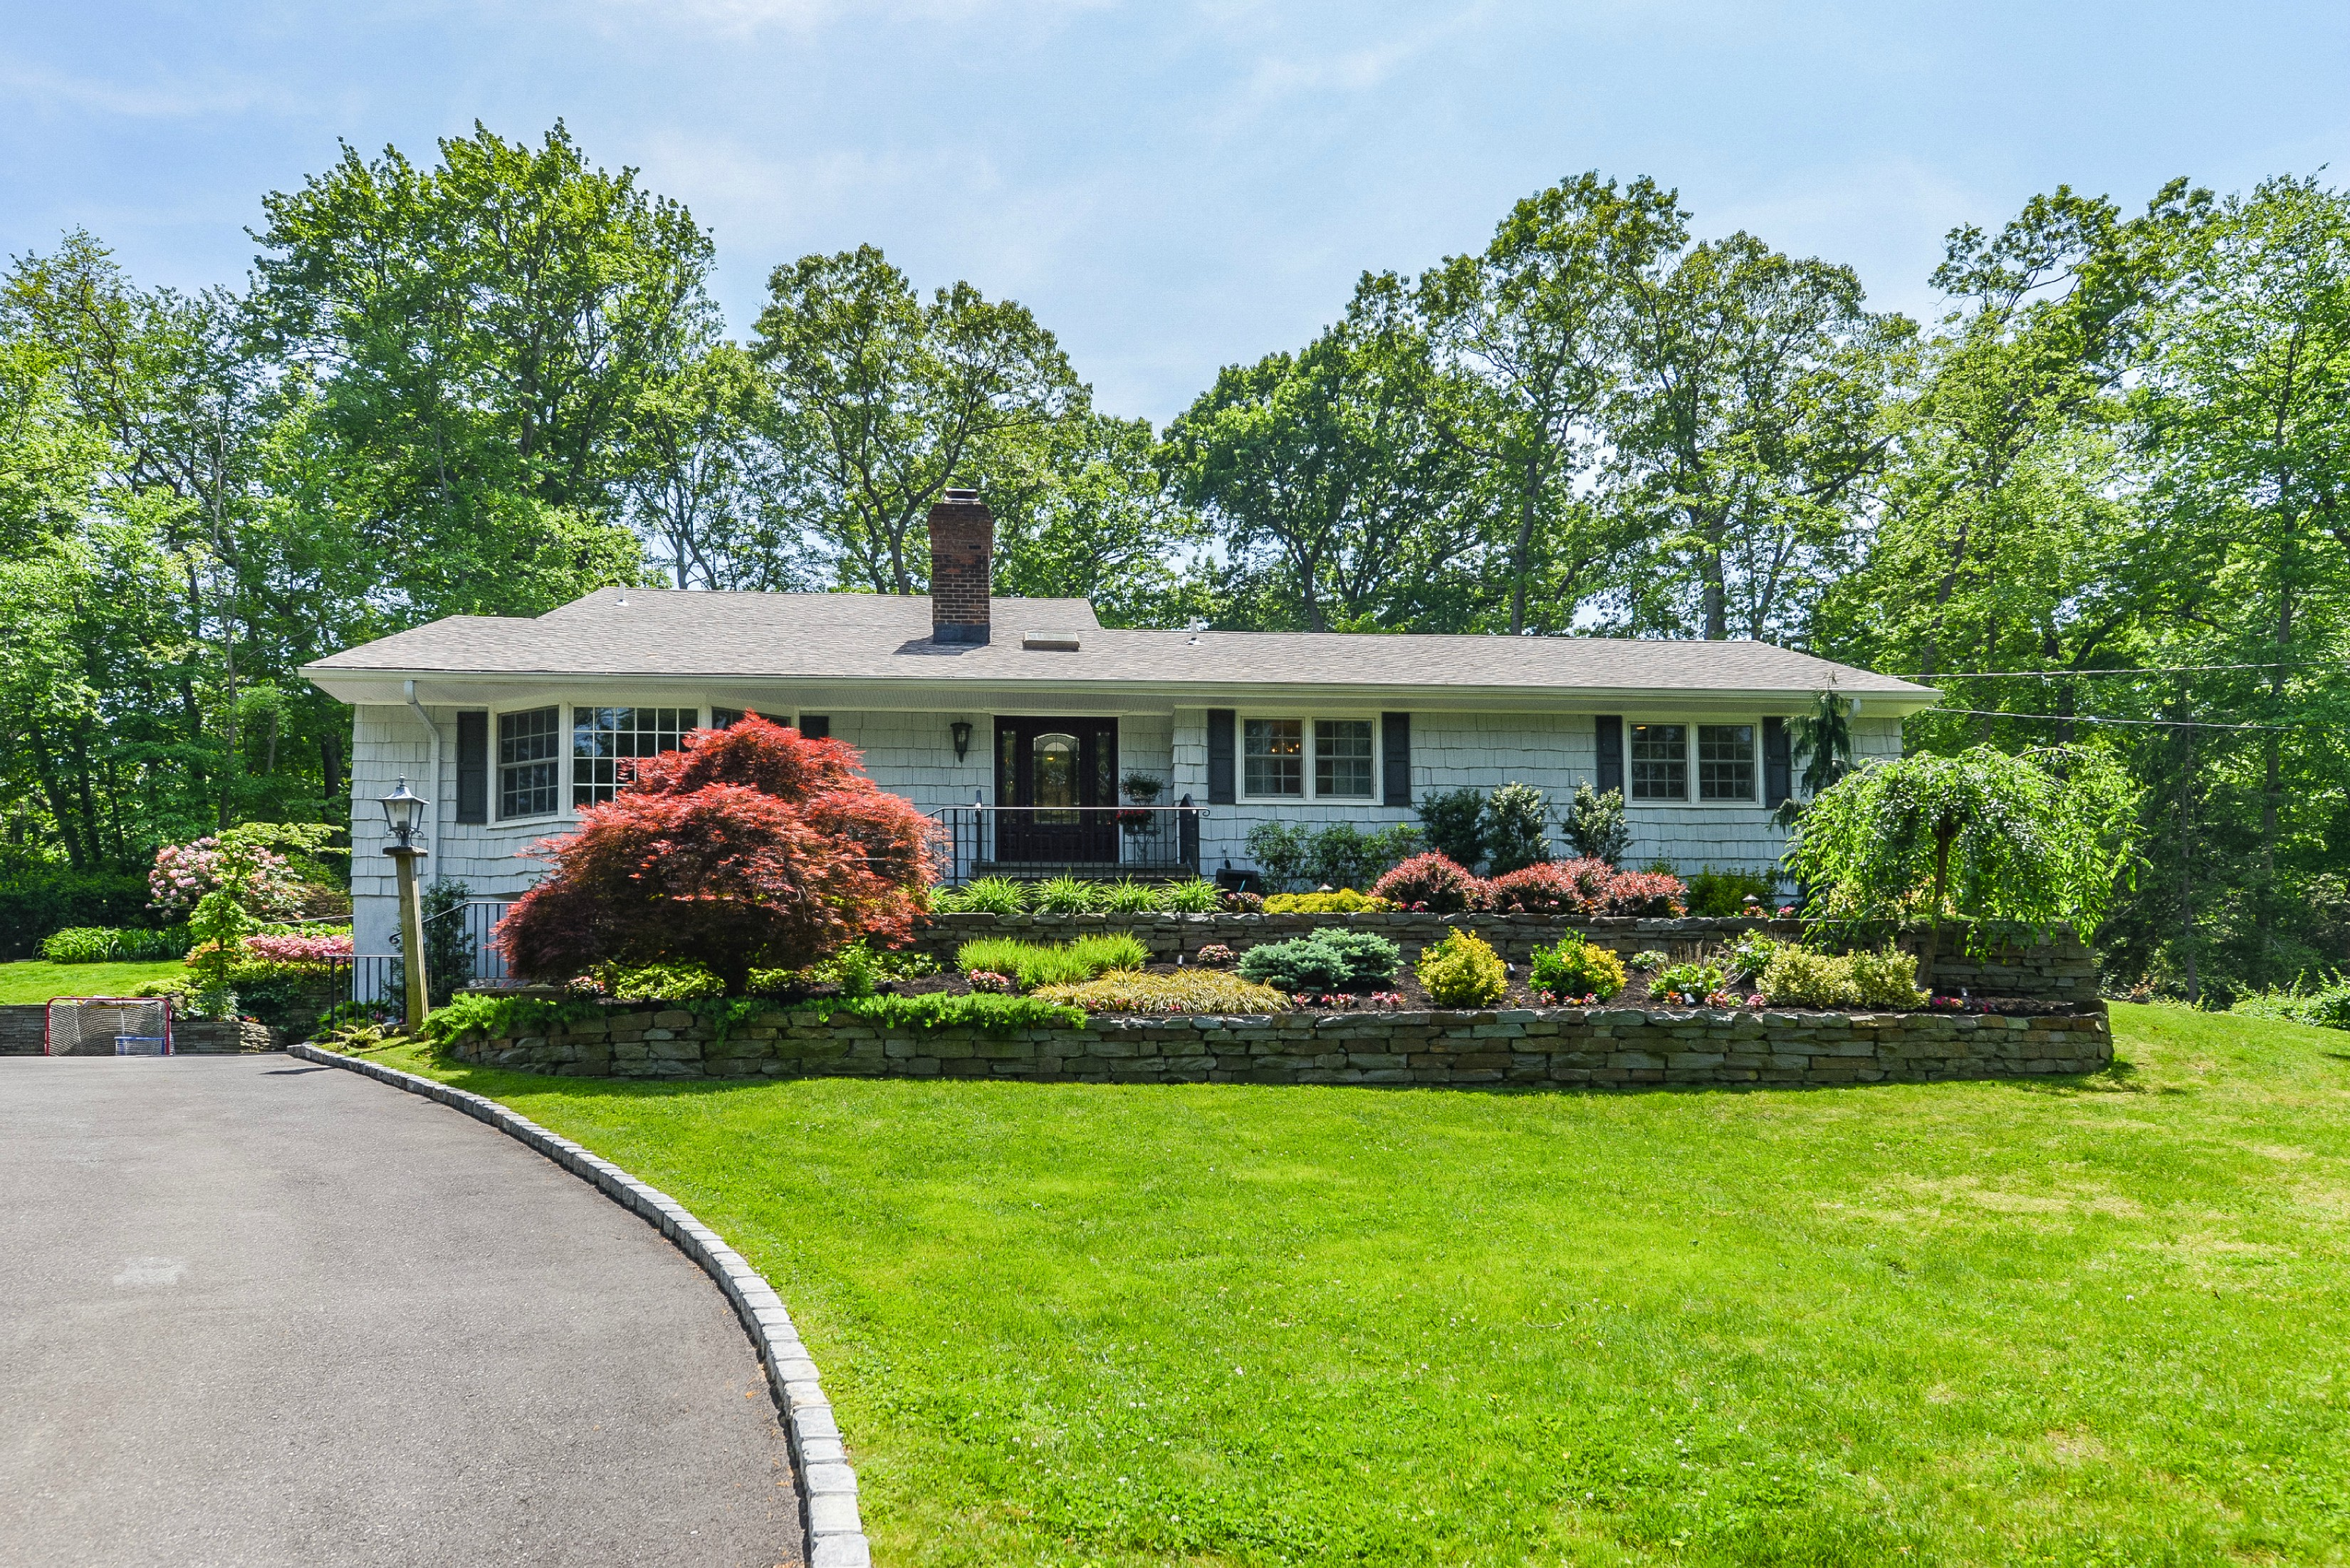 Single Family Home for Sale at Exp Ranch 20 Sunken Orchard Ln Oyster Bay Cove, New York, 11771 United States